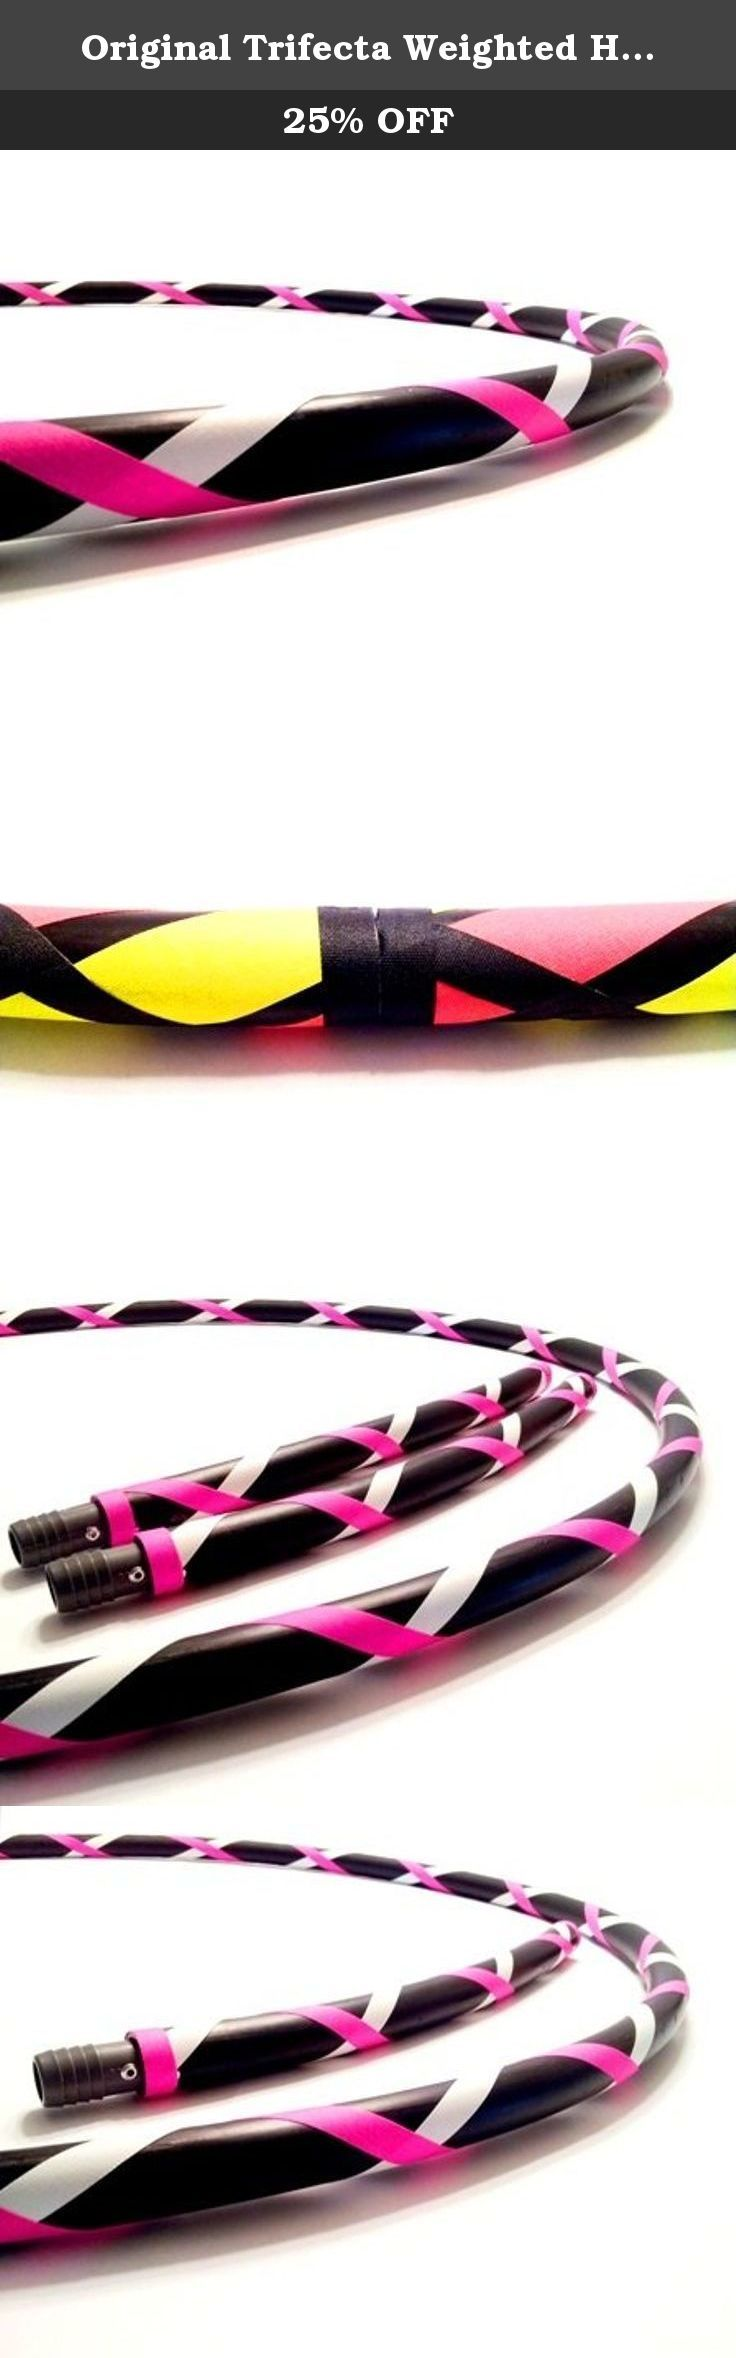 "Original Trifecta Weighted Hula Hoop (Fitness Guru Pink)3 Hoops in 1 (40"" 1 Hula Hoop). DIRECT FROM THE MANUFACTURER. Featuring the original manufacturer of the ""TRIFECTA"" the newest innovation in hula hooping. Paradise Hoops is formally the manufacturer for about 90% of Hoopnotica's handmade hula hoops. We have the BEST QUALITY BEST PRICE. This ""TRIFECTA"" hula hoop was created by Janou Lightning former team leader of Hoopnotica. She took her expertise in the hooping industry and made a…"